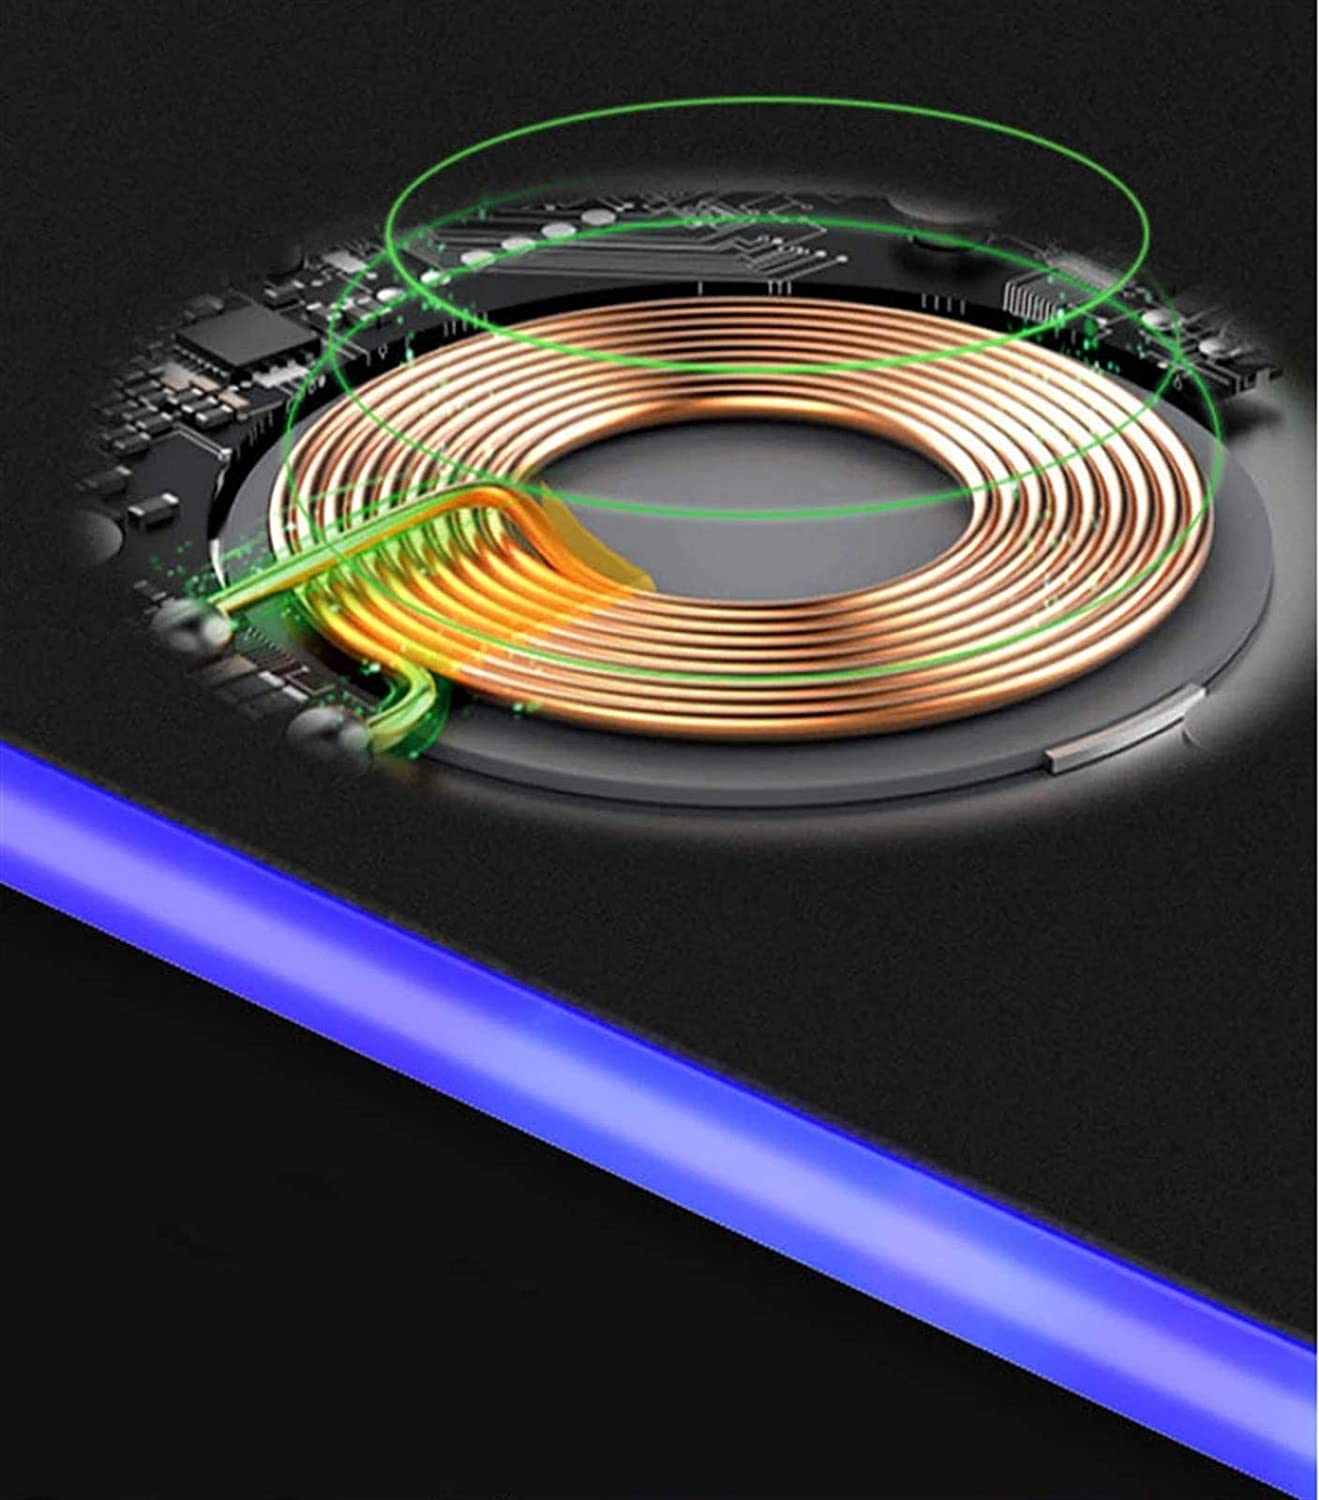 Amazon.com: Qi Wireless Charger Mouse Pad, 3 in 1 Waterproof 10W Fast Charger Mouse Pad Wireless Charging for MICES & All Qi enable devices like iPhone 8; ...